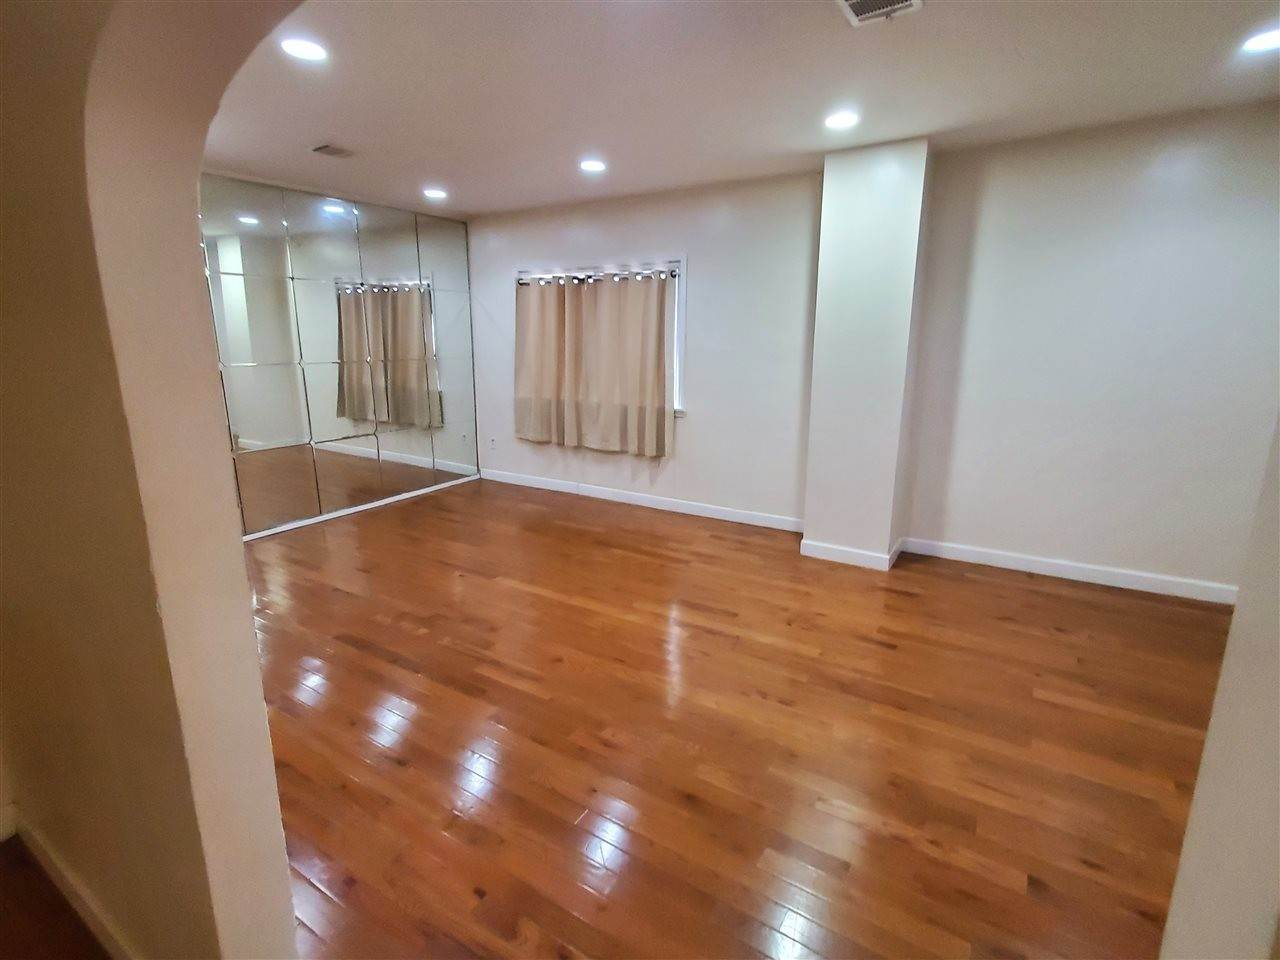 9. Single Family Home for Rent at 27 NELSON AVENUE #APT # Jersey City, New Jersey, 07307 United States